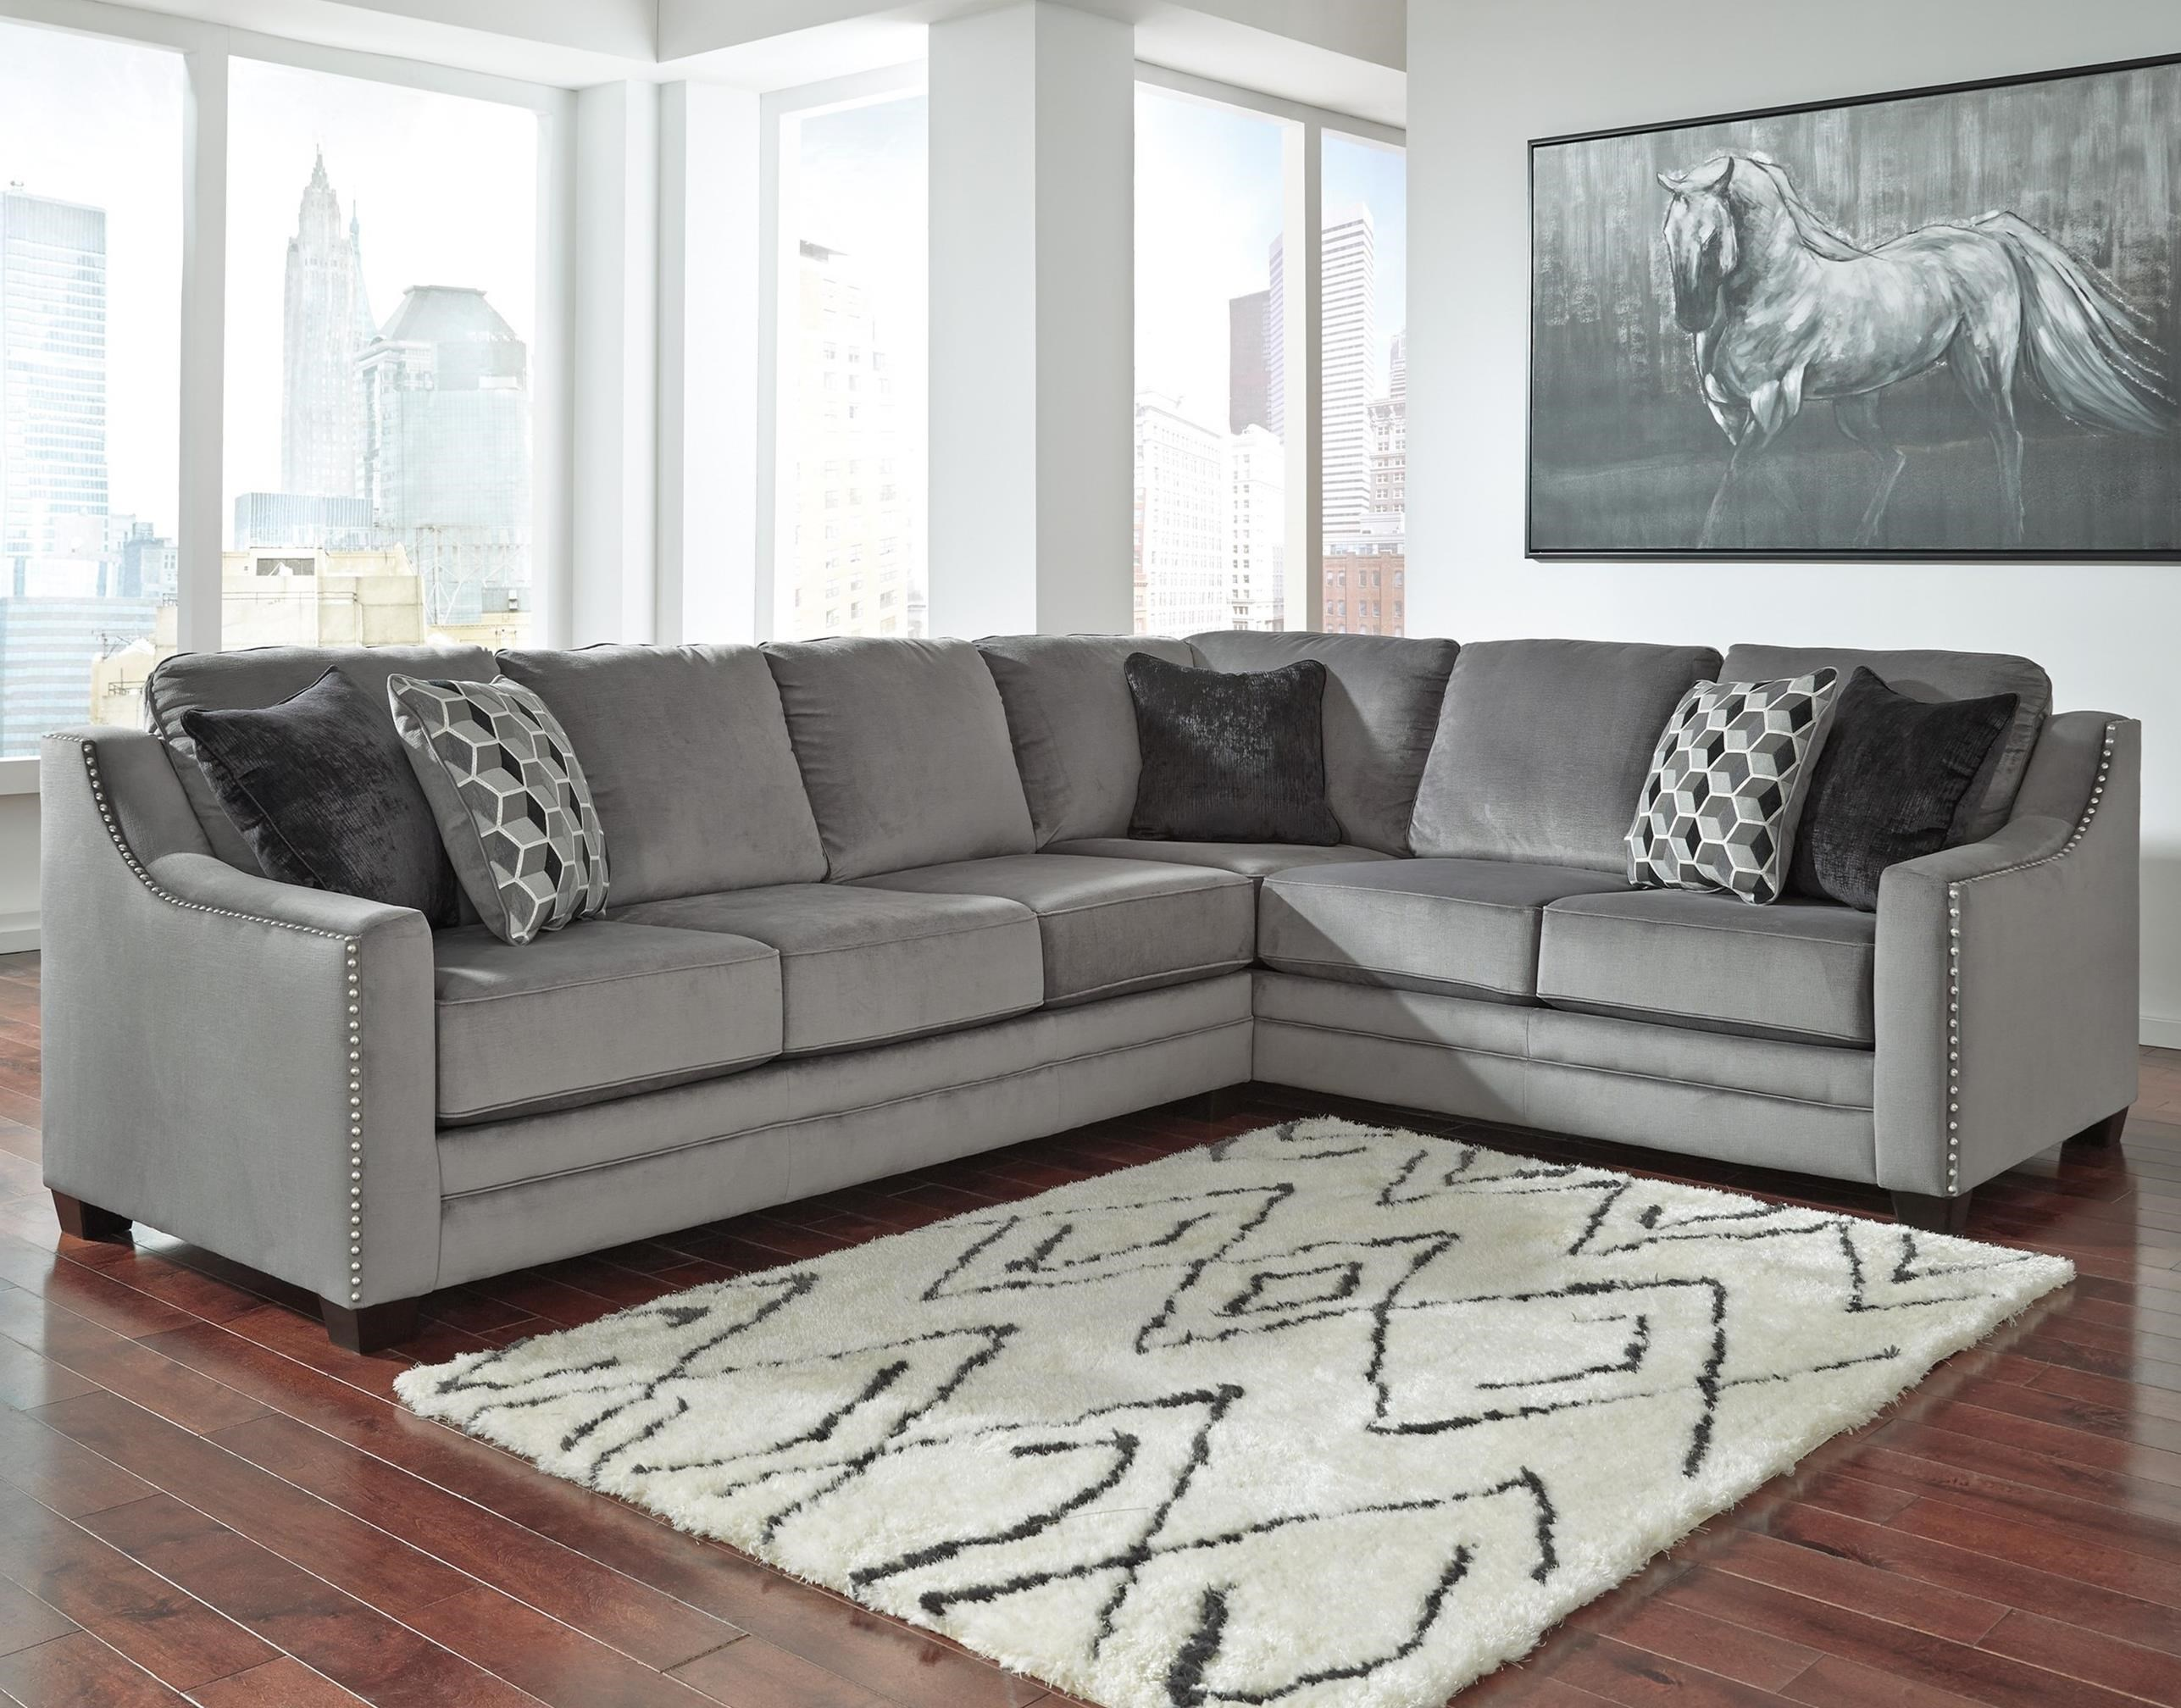 Benchcraft Bicknell Contemporary 2 Piece Sectional With Left Sofa